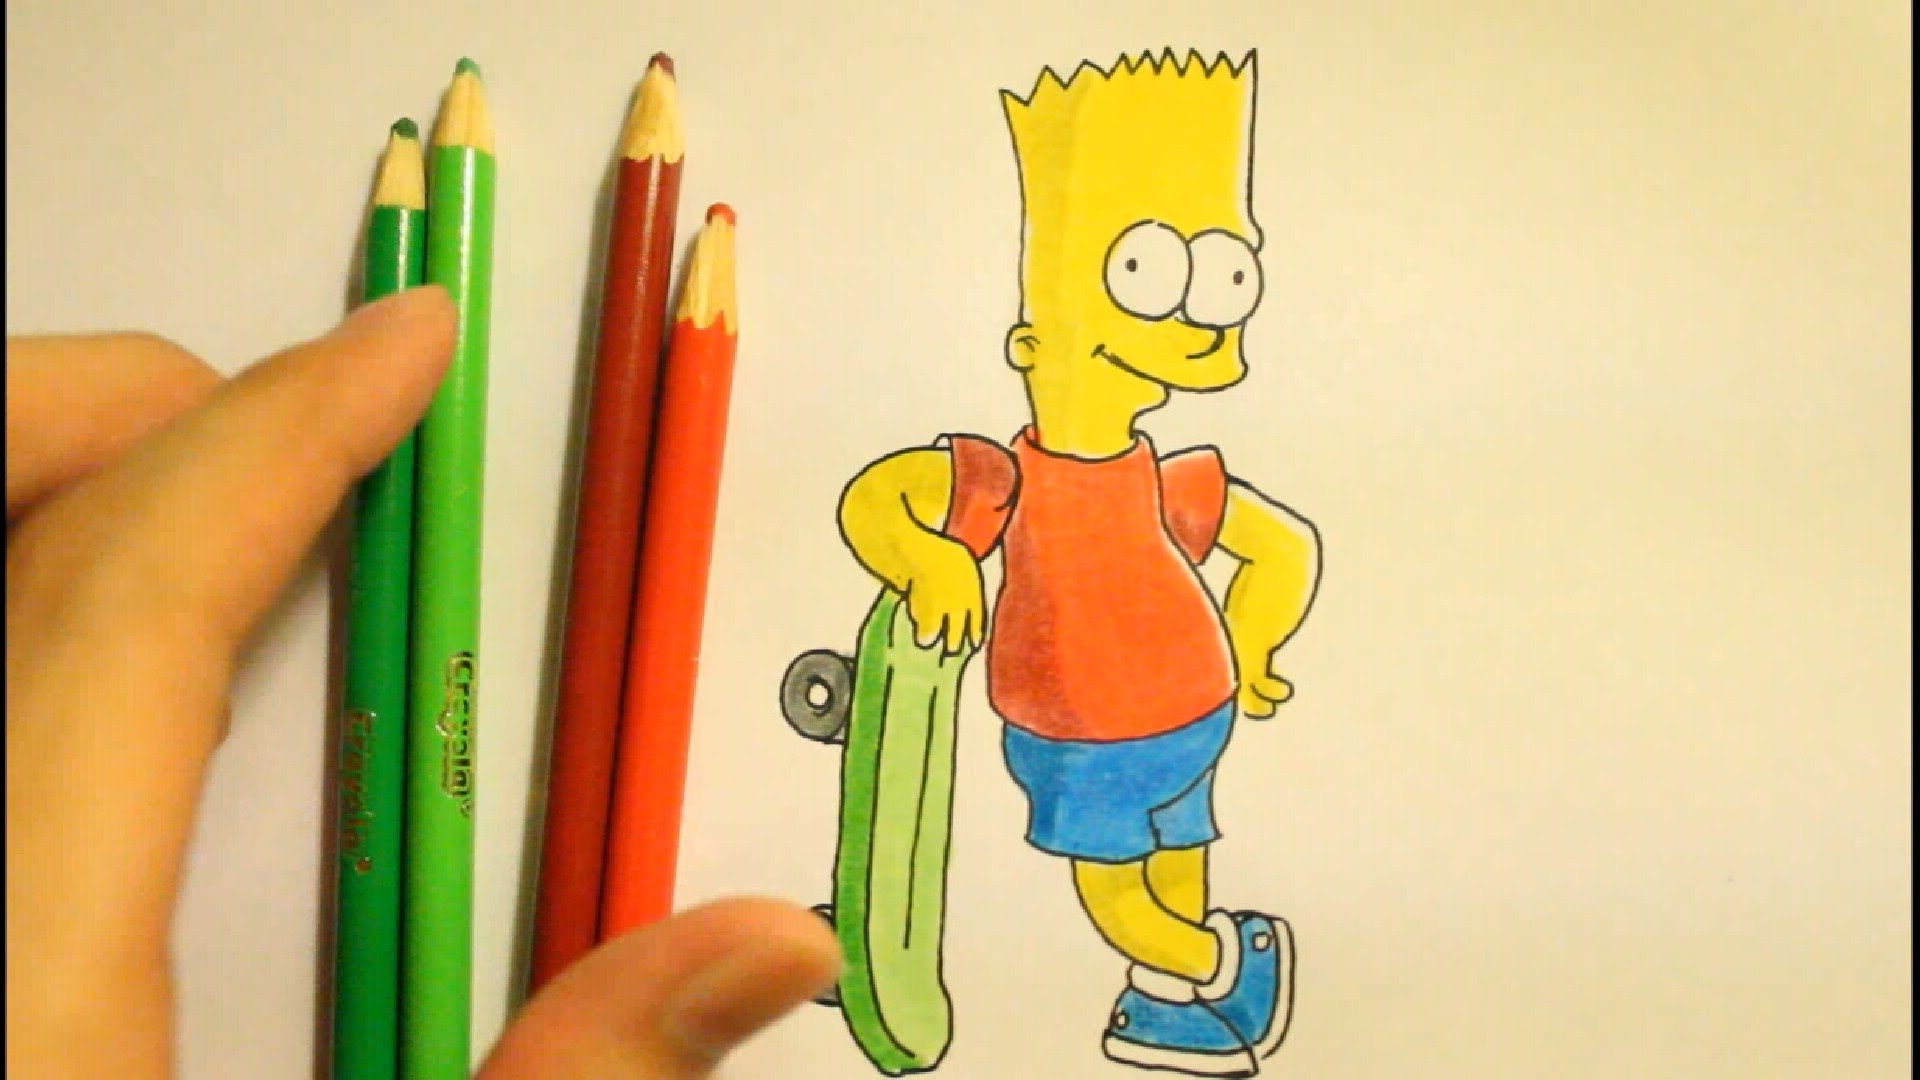 Drawn cartoon simpsons character #7